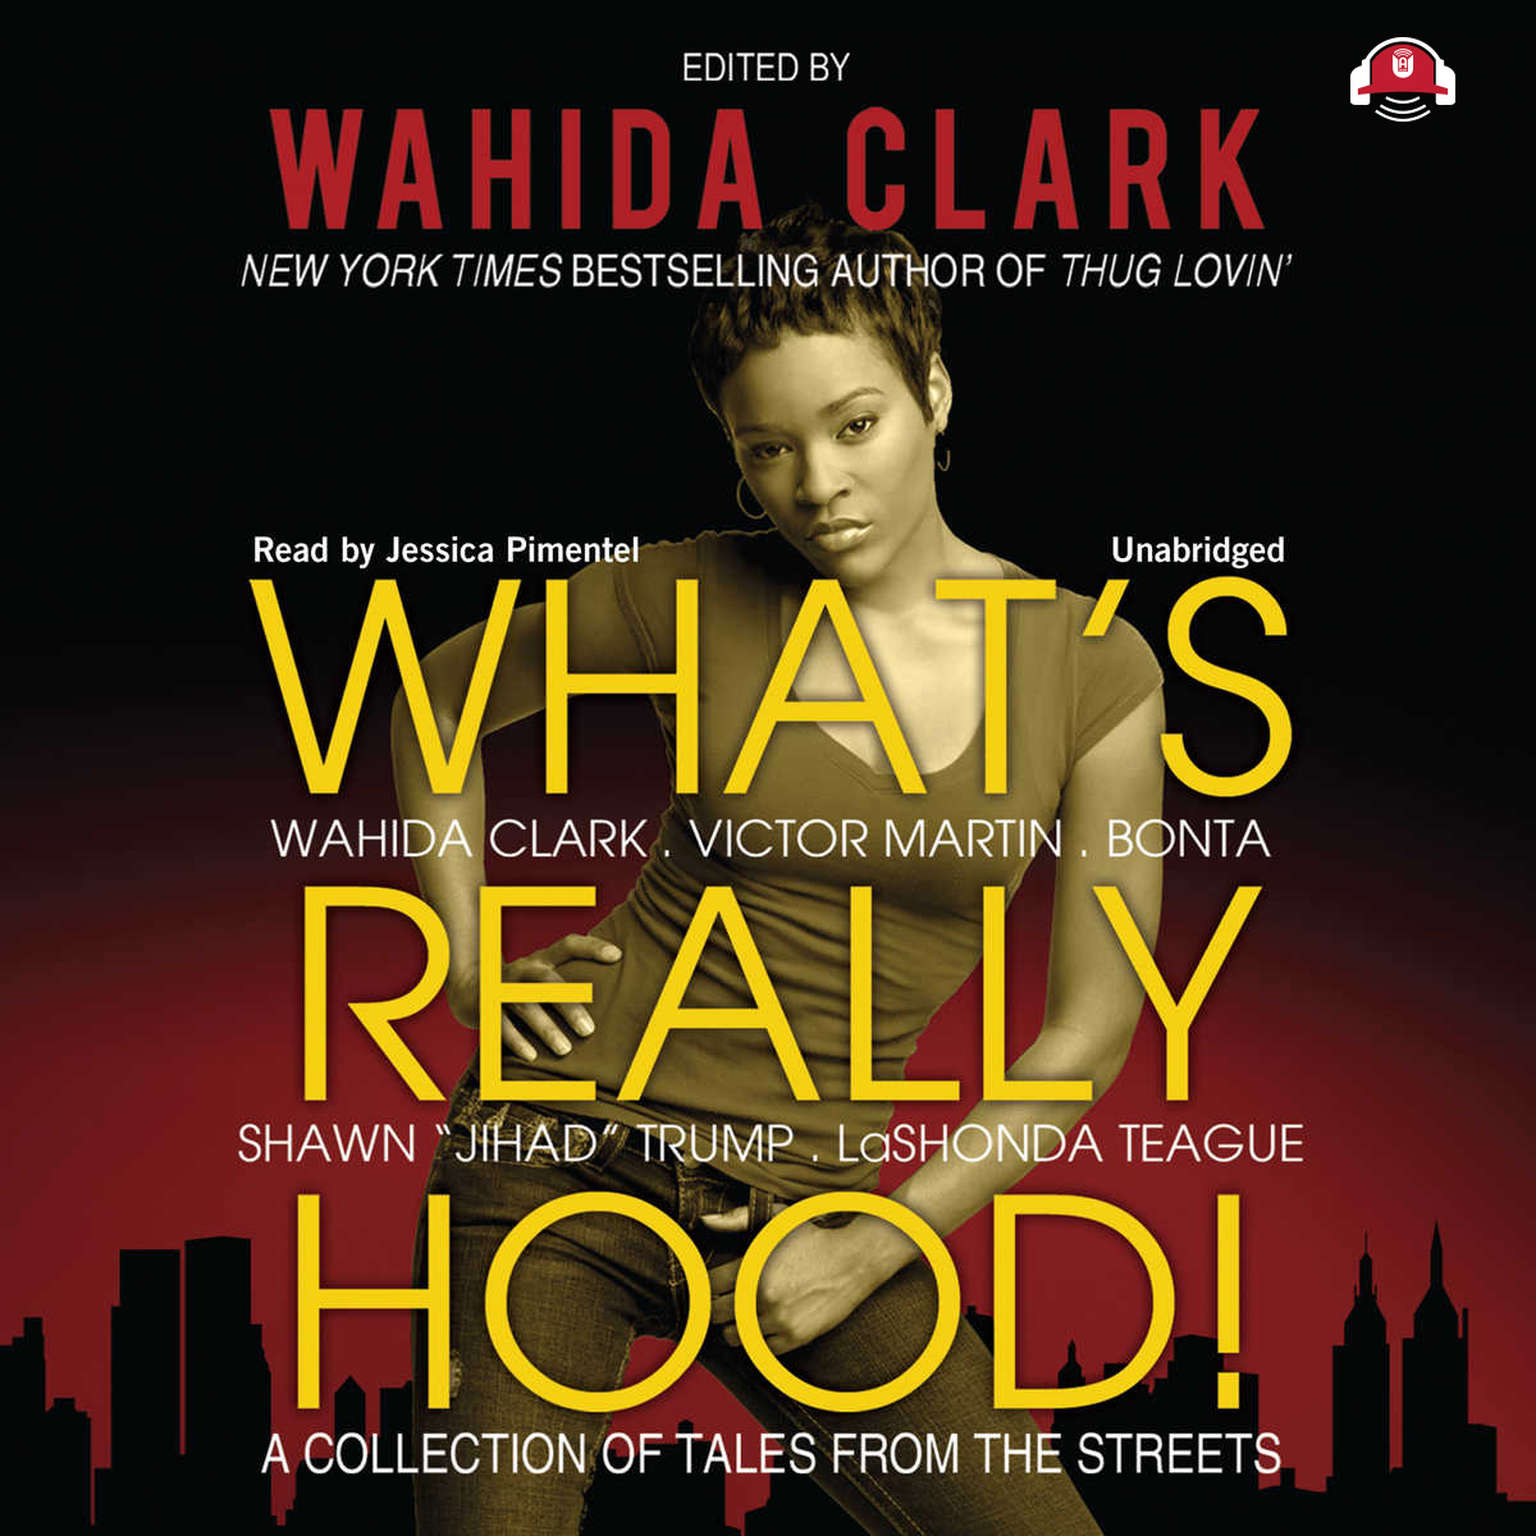 Printable What's Really Hood!: A Collection of Tales from the Streets Audiobook Cover Art